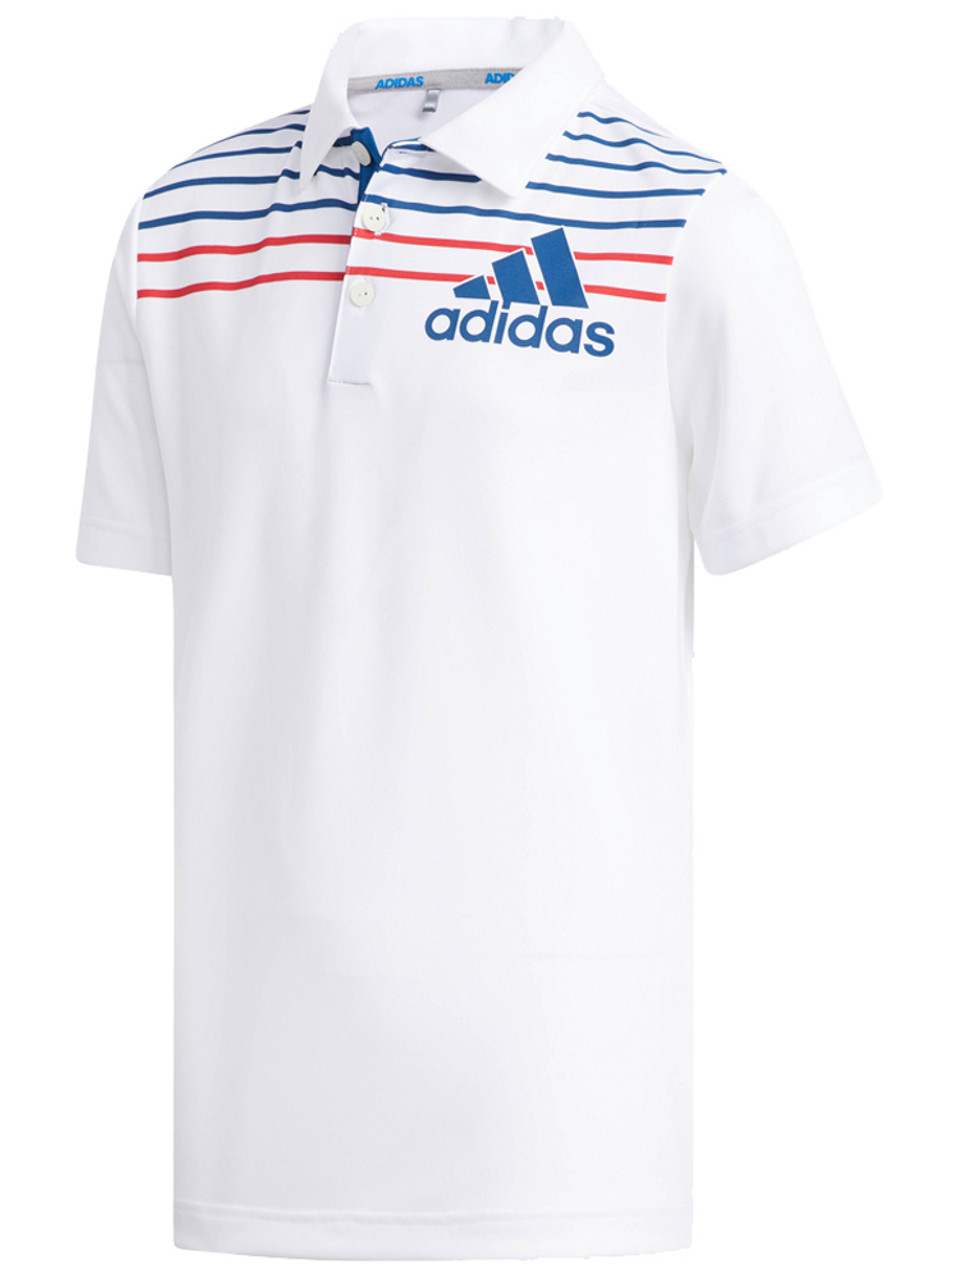 Recyclée Chaussure Adidas Chaussure Recyclée Recyclée Chaussure 100 Adidas 100 Adidas 100 Adidas E29IHWD